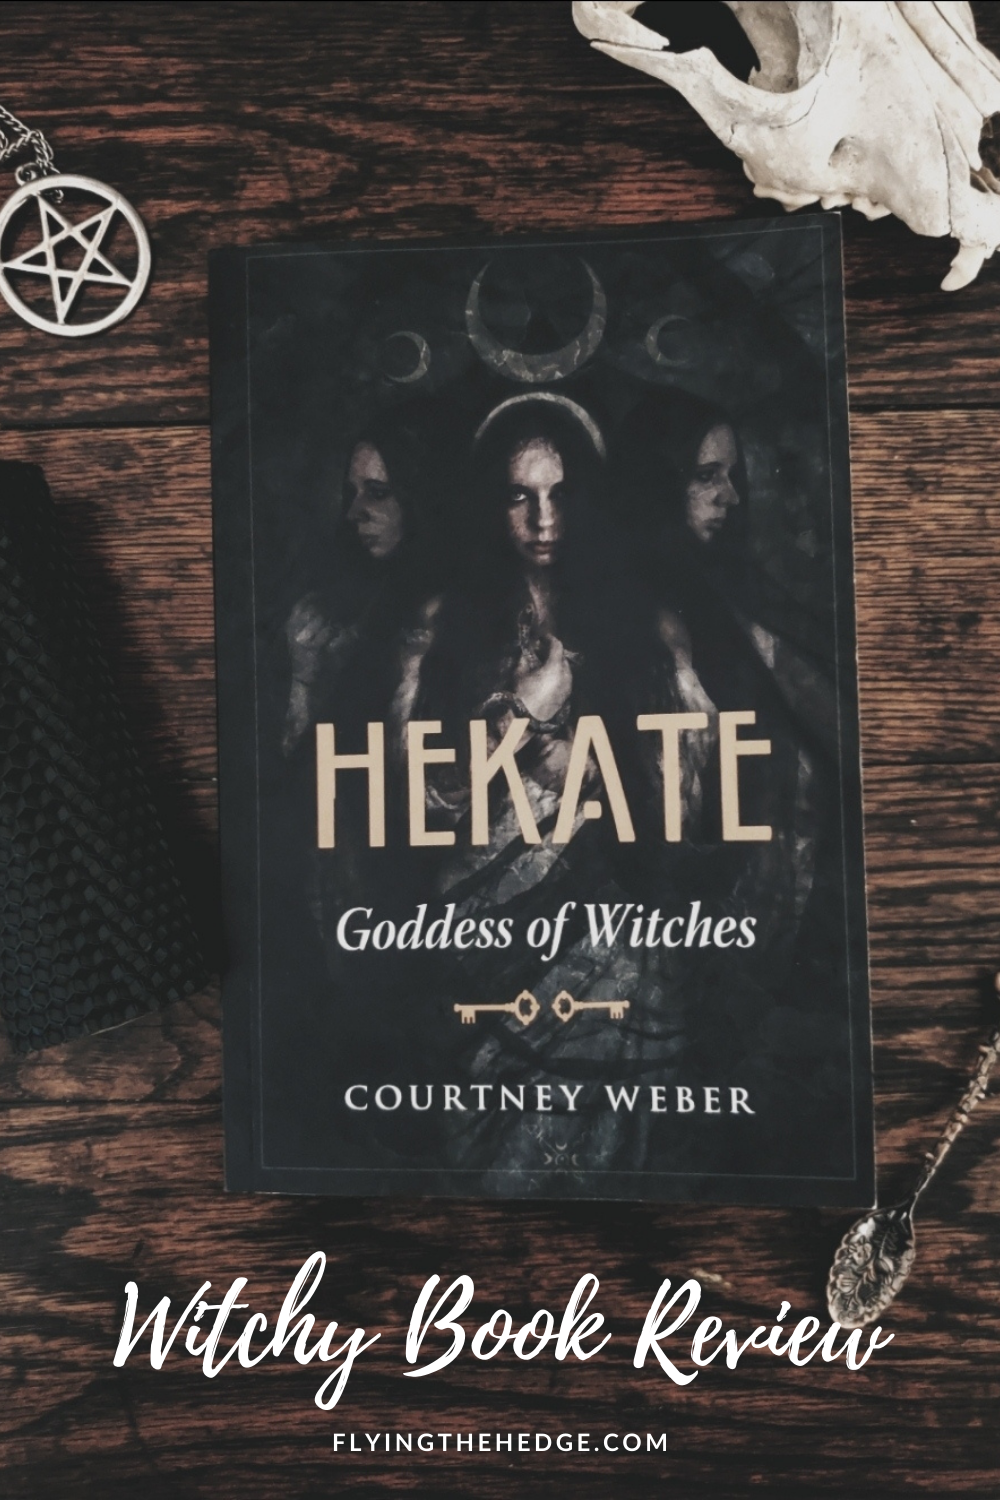 Hekate, book review, witch, witchcraft, keeper of keys, goddess of witches, wicca, wiccan, pagan, neopagan, witchy reads, witch book